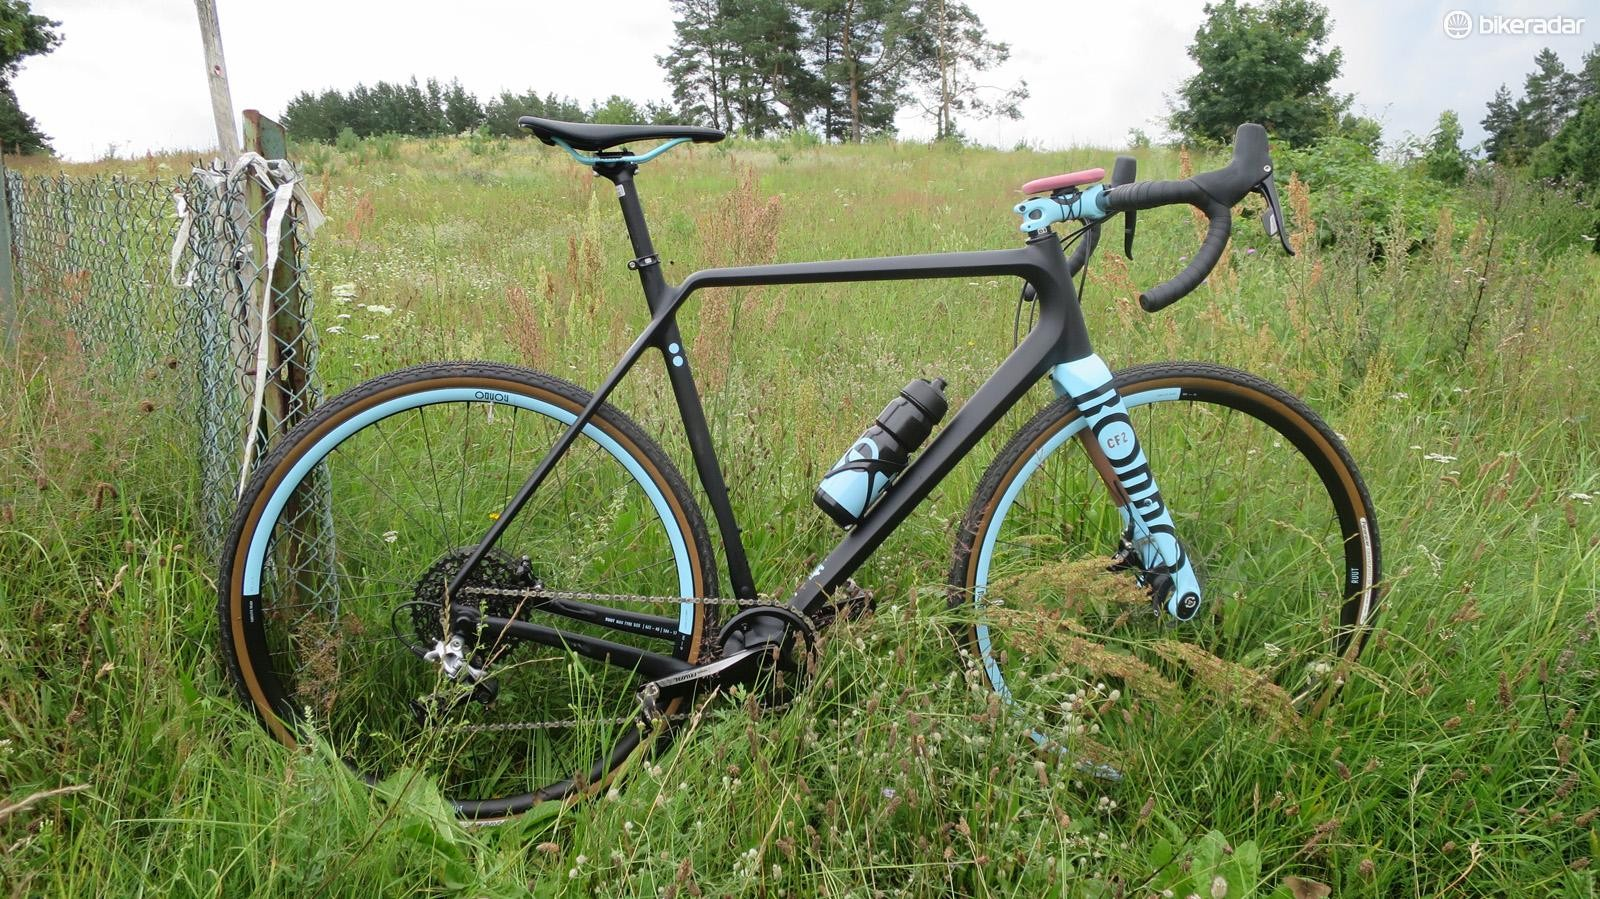 The Rondo CF2 was the bike I got to test on Poland's varied terrain